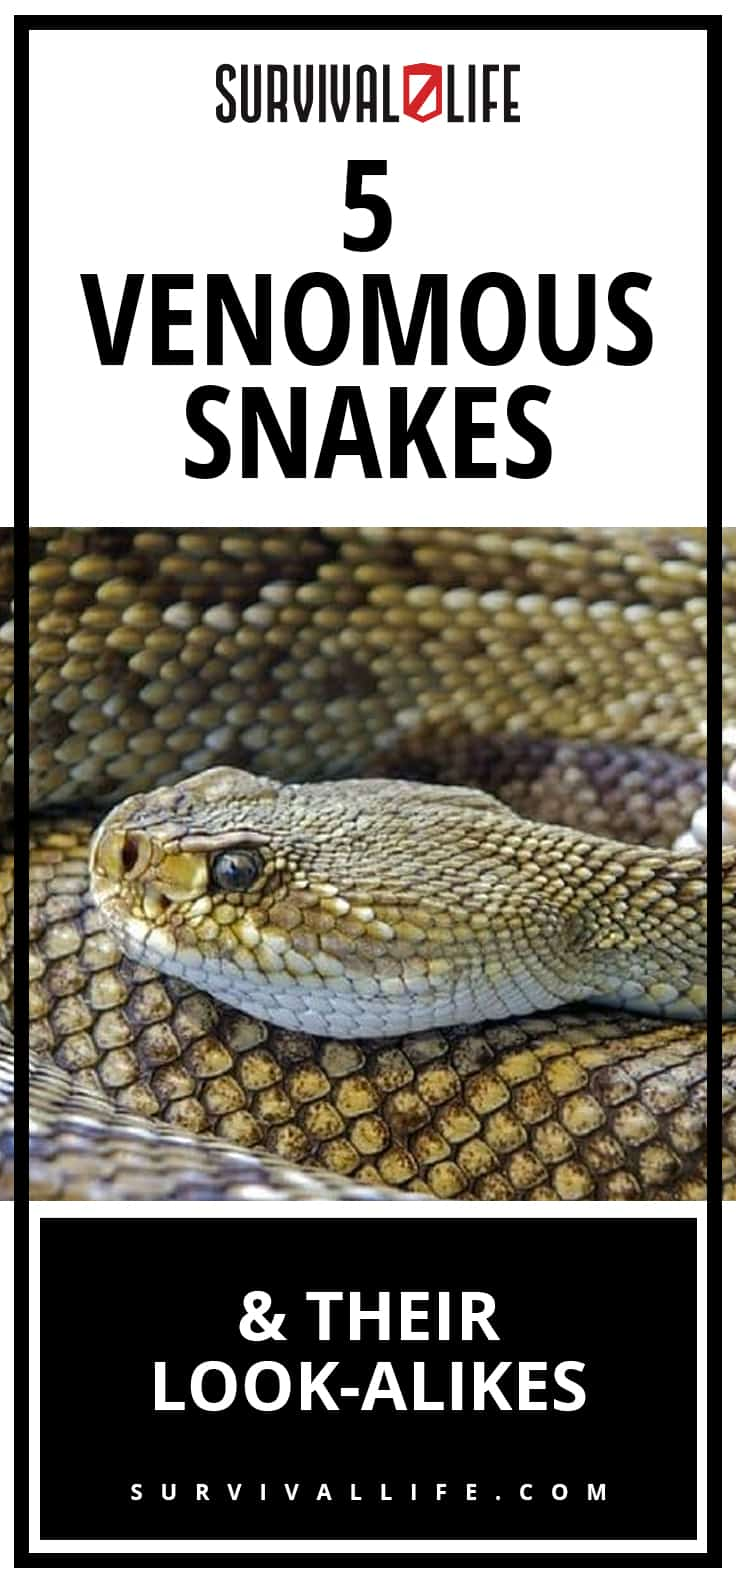 Venomous Snakes and Their Look-Alikes | https://survivallife.com/venomous-snakes-look-alikes/